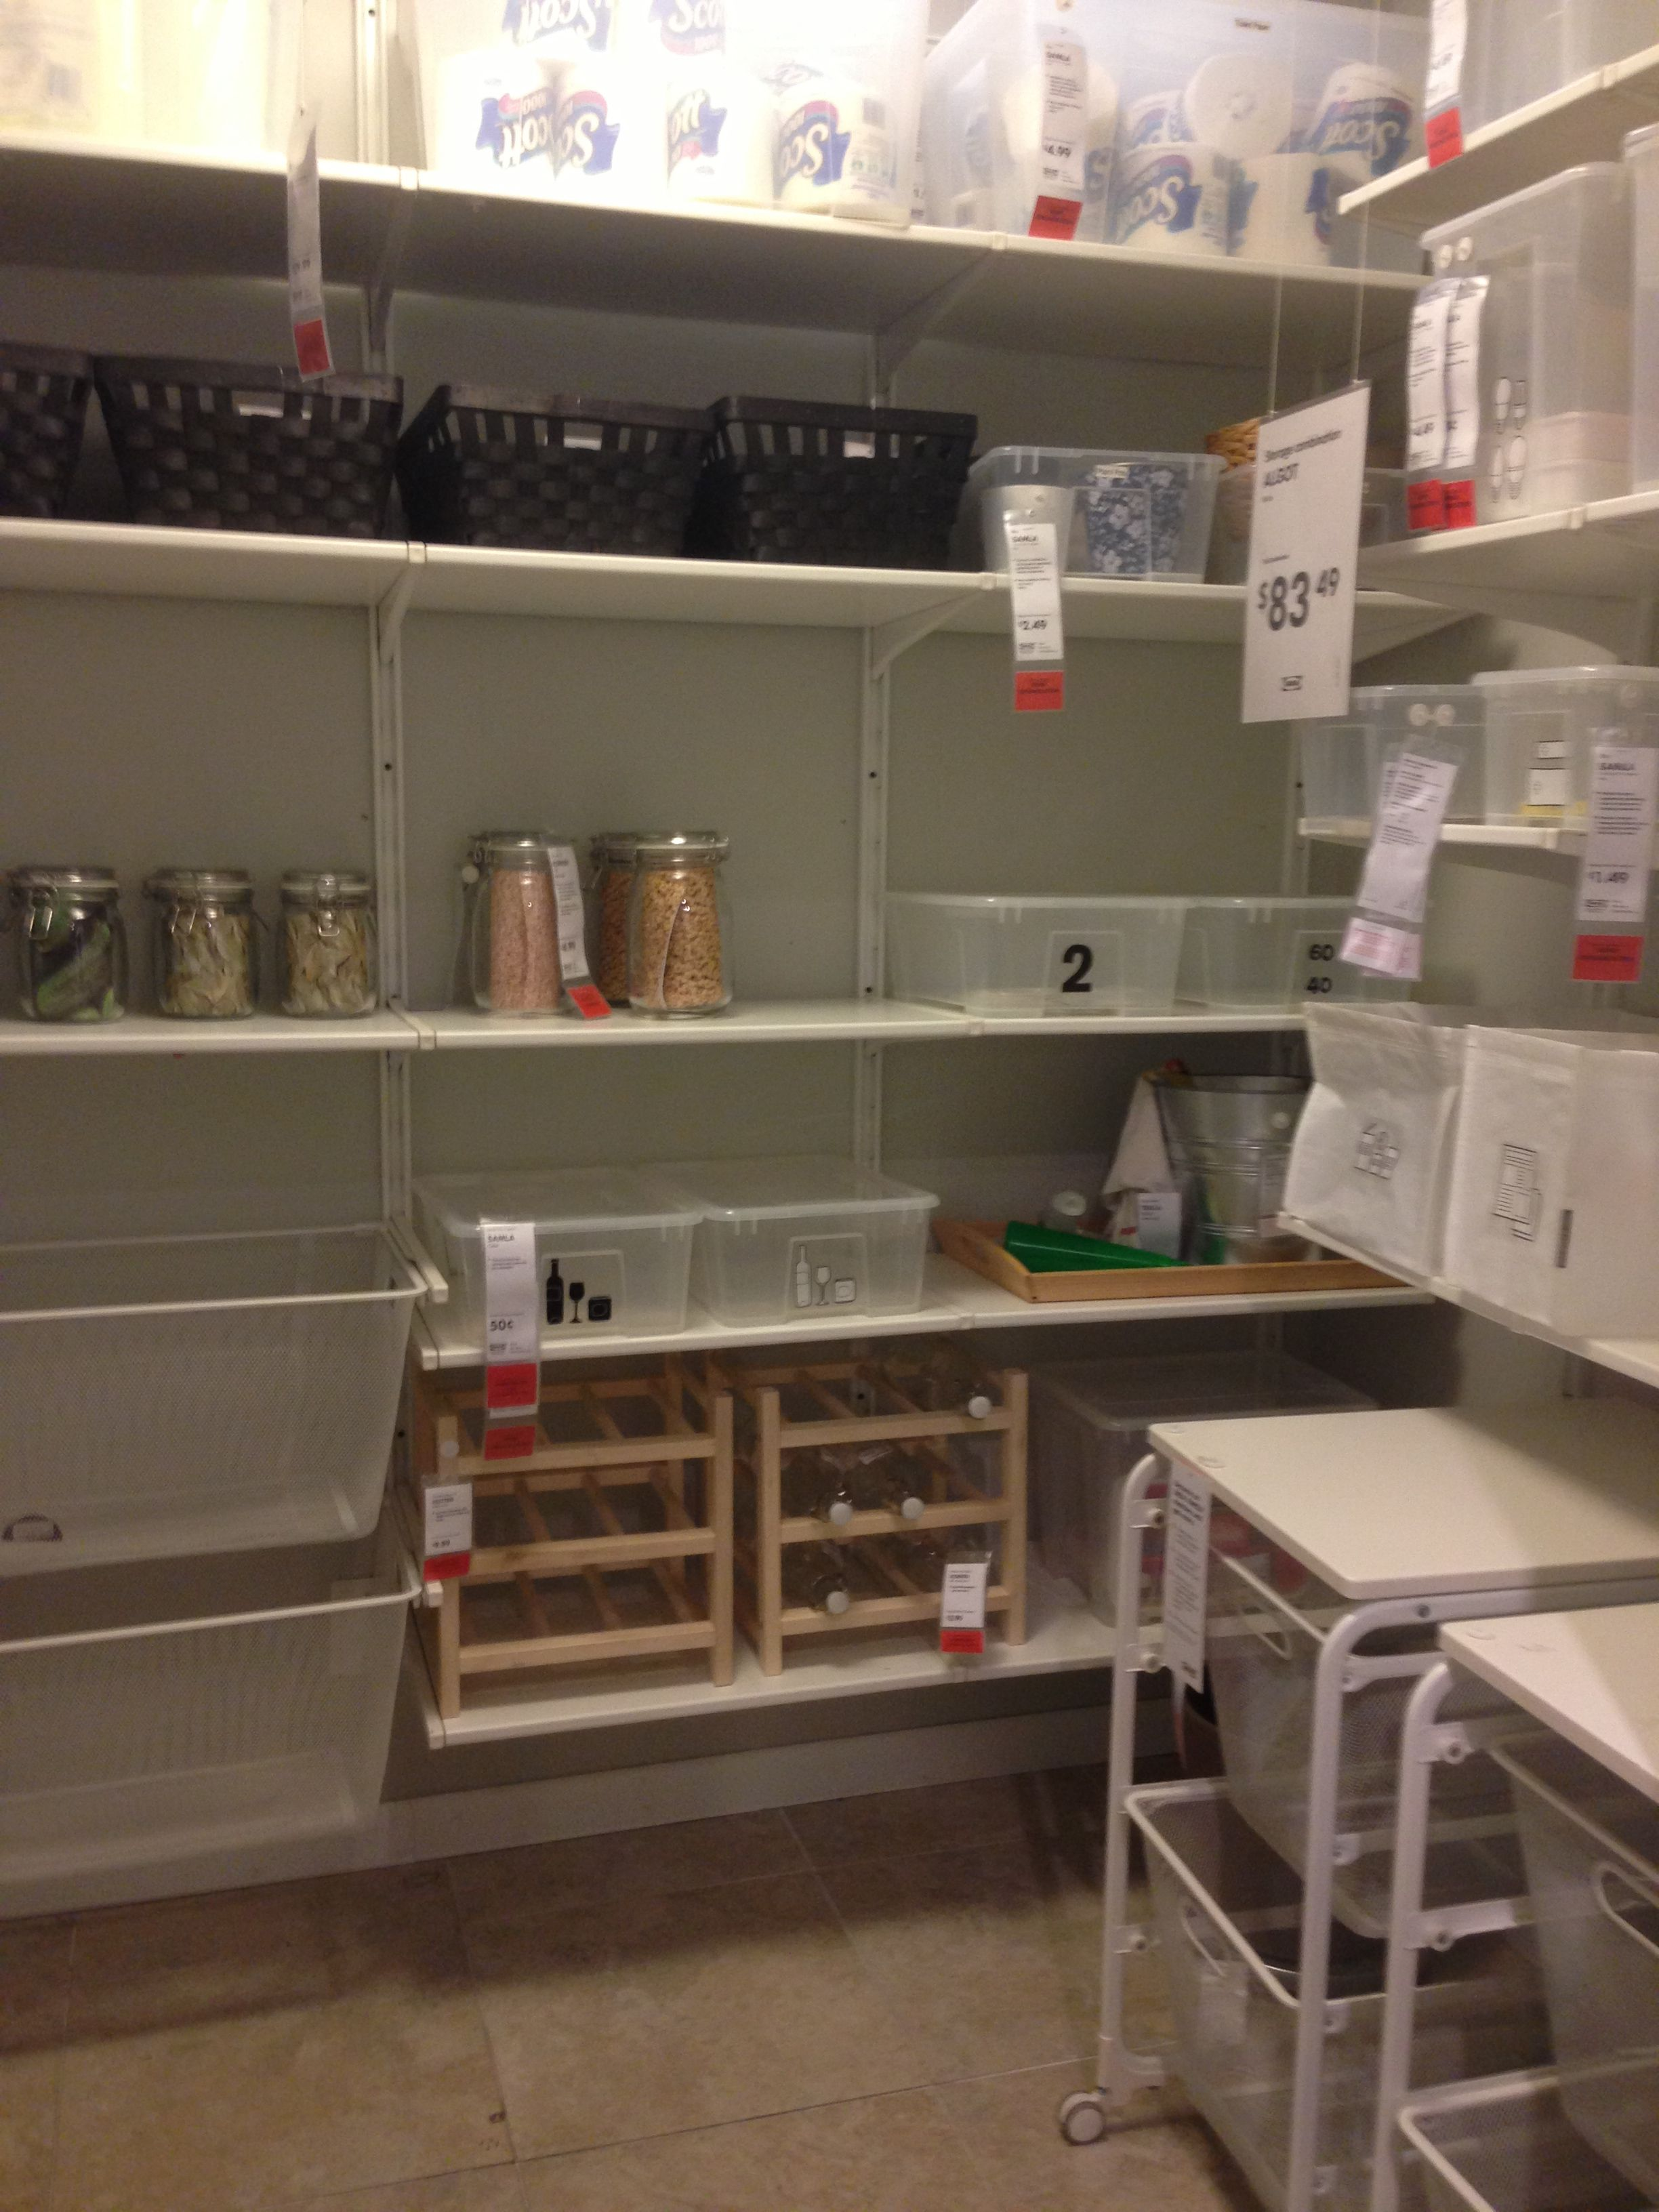 Ikea Küche Organisation Algot Pantry Storage Also Check Ivar Wooden Storage